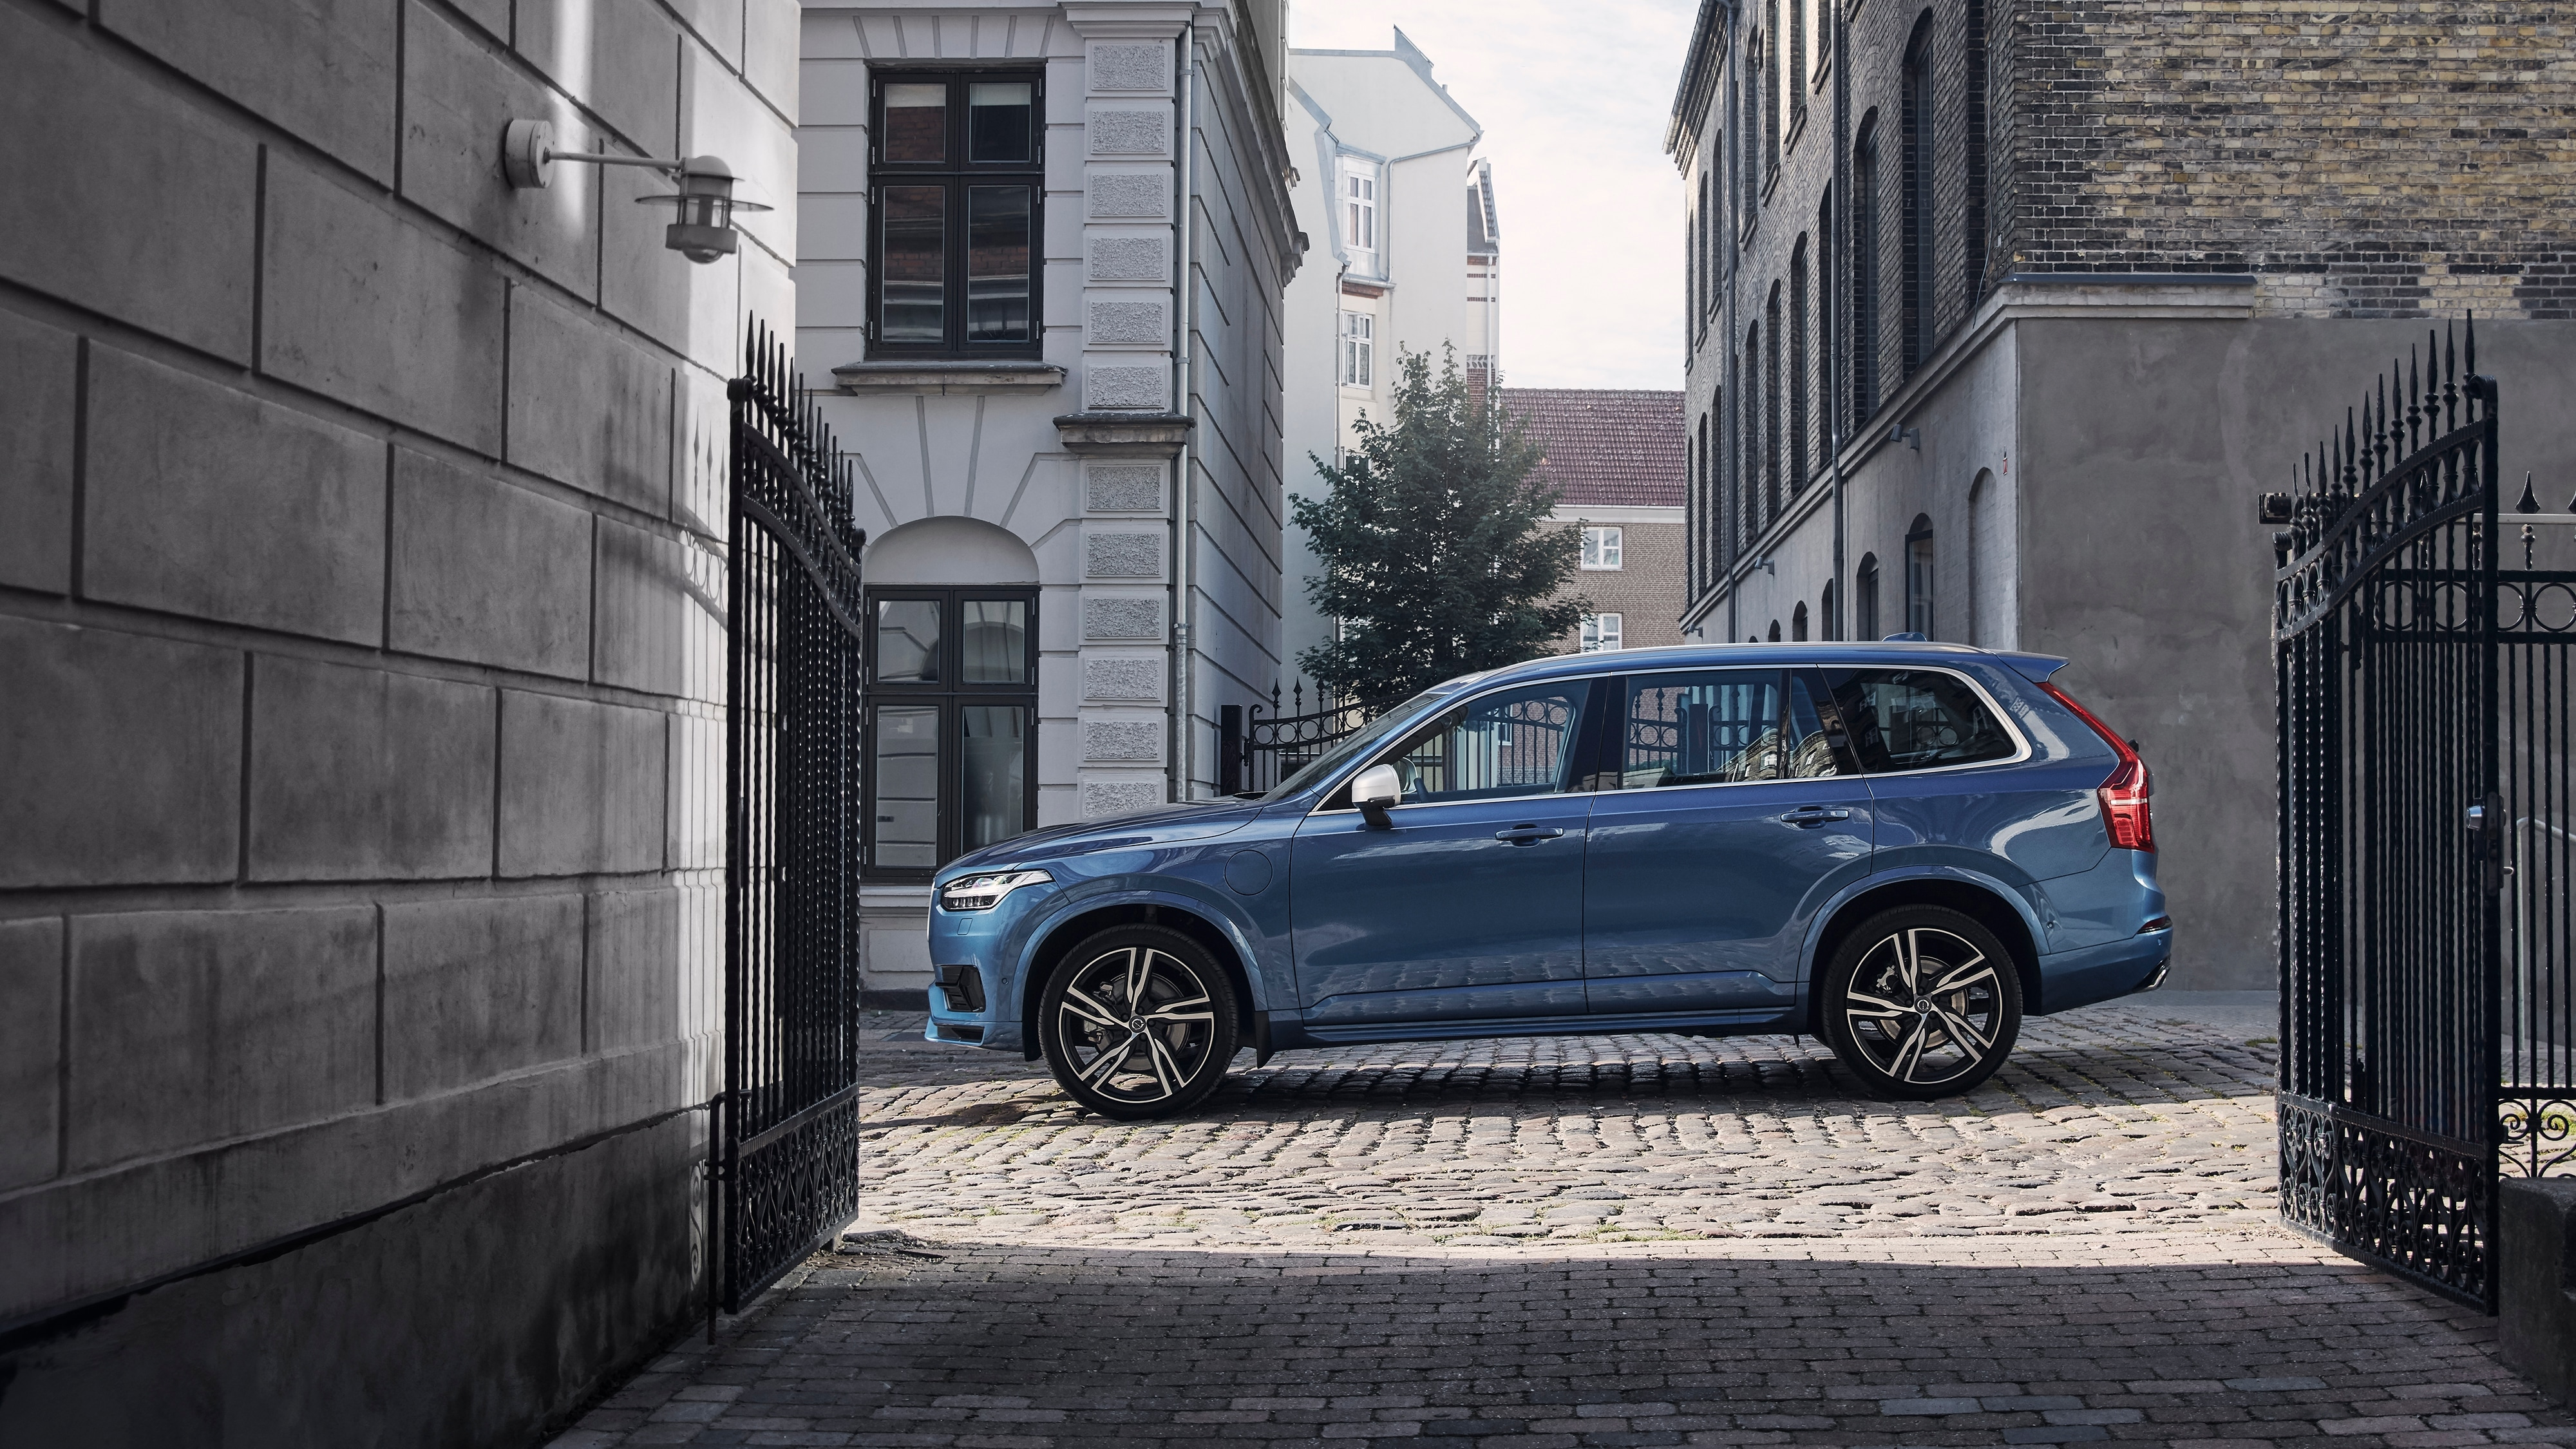 The Volvo XC90 R-Design trim parked on a cobbled street